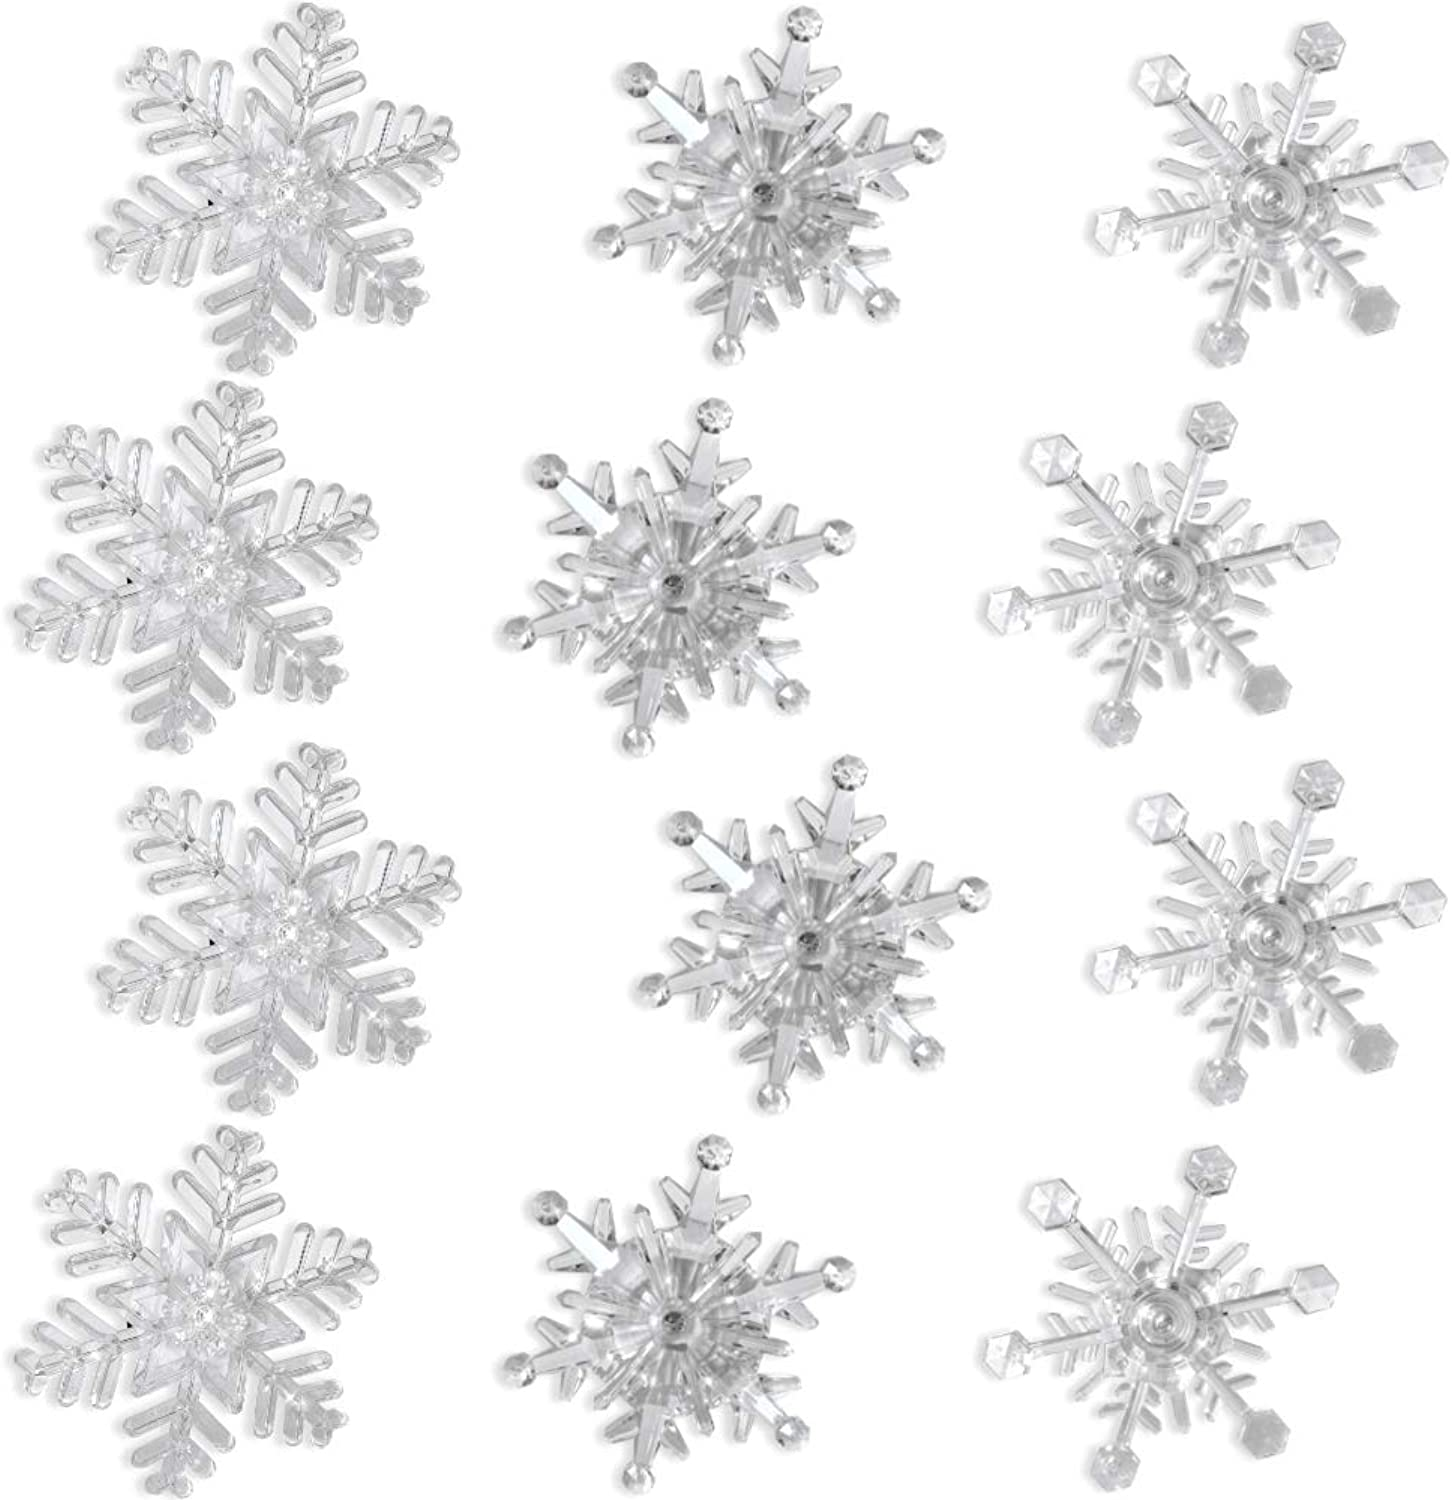 Snowflake color Changing Led Lights Set of 12 Snowflakes with Suction Cups Attached to Back for Hanging in a Window Acrylic - 4 Inch- Snowflake Decorations– Night Light Window Clings- Seasonal Window